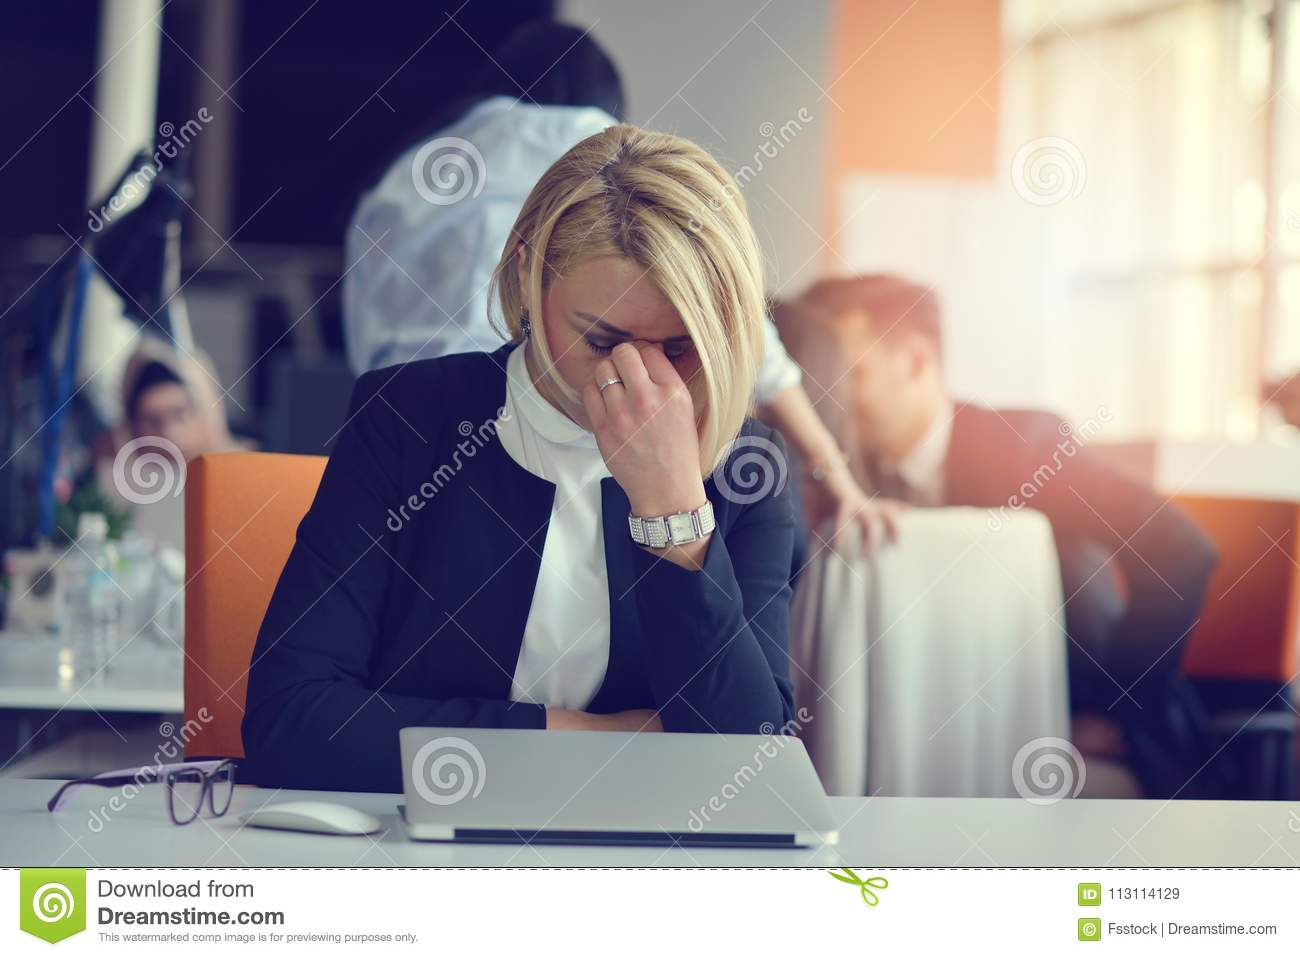 Feeling tired and stressed. Frustrated adult woman keeping eyes closed from fatigue while sitting in office.